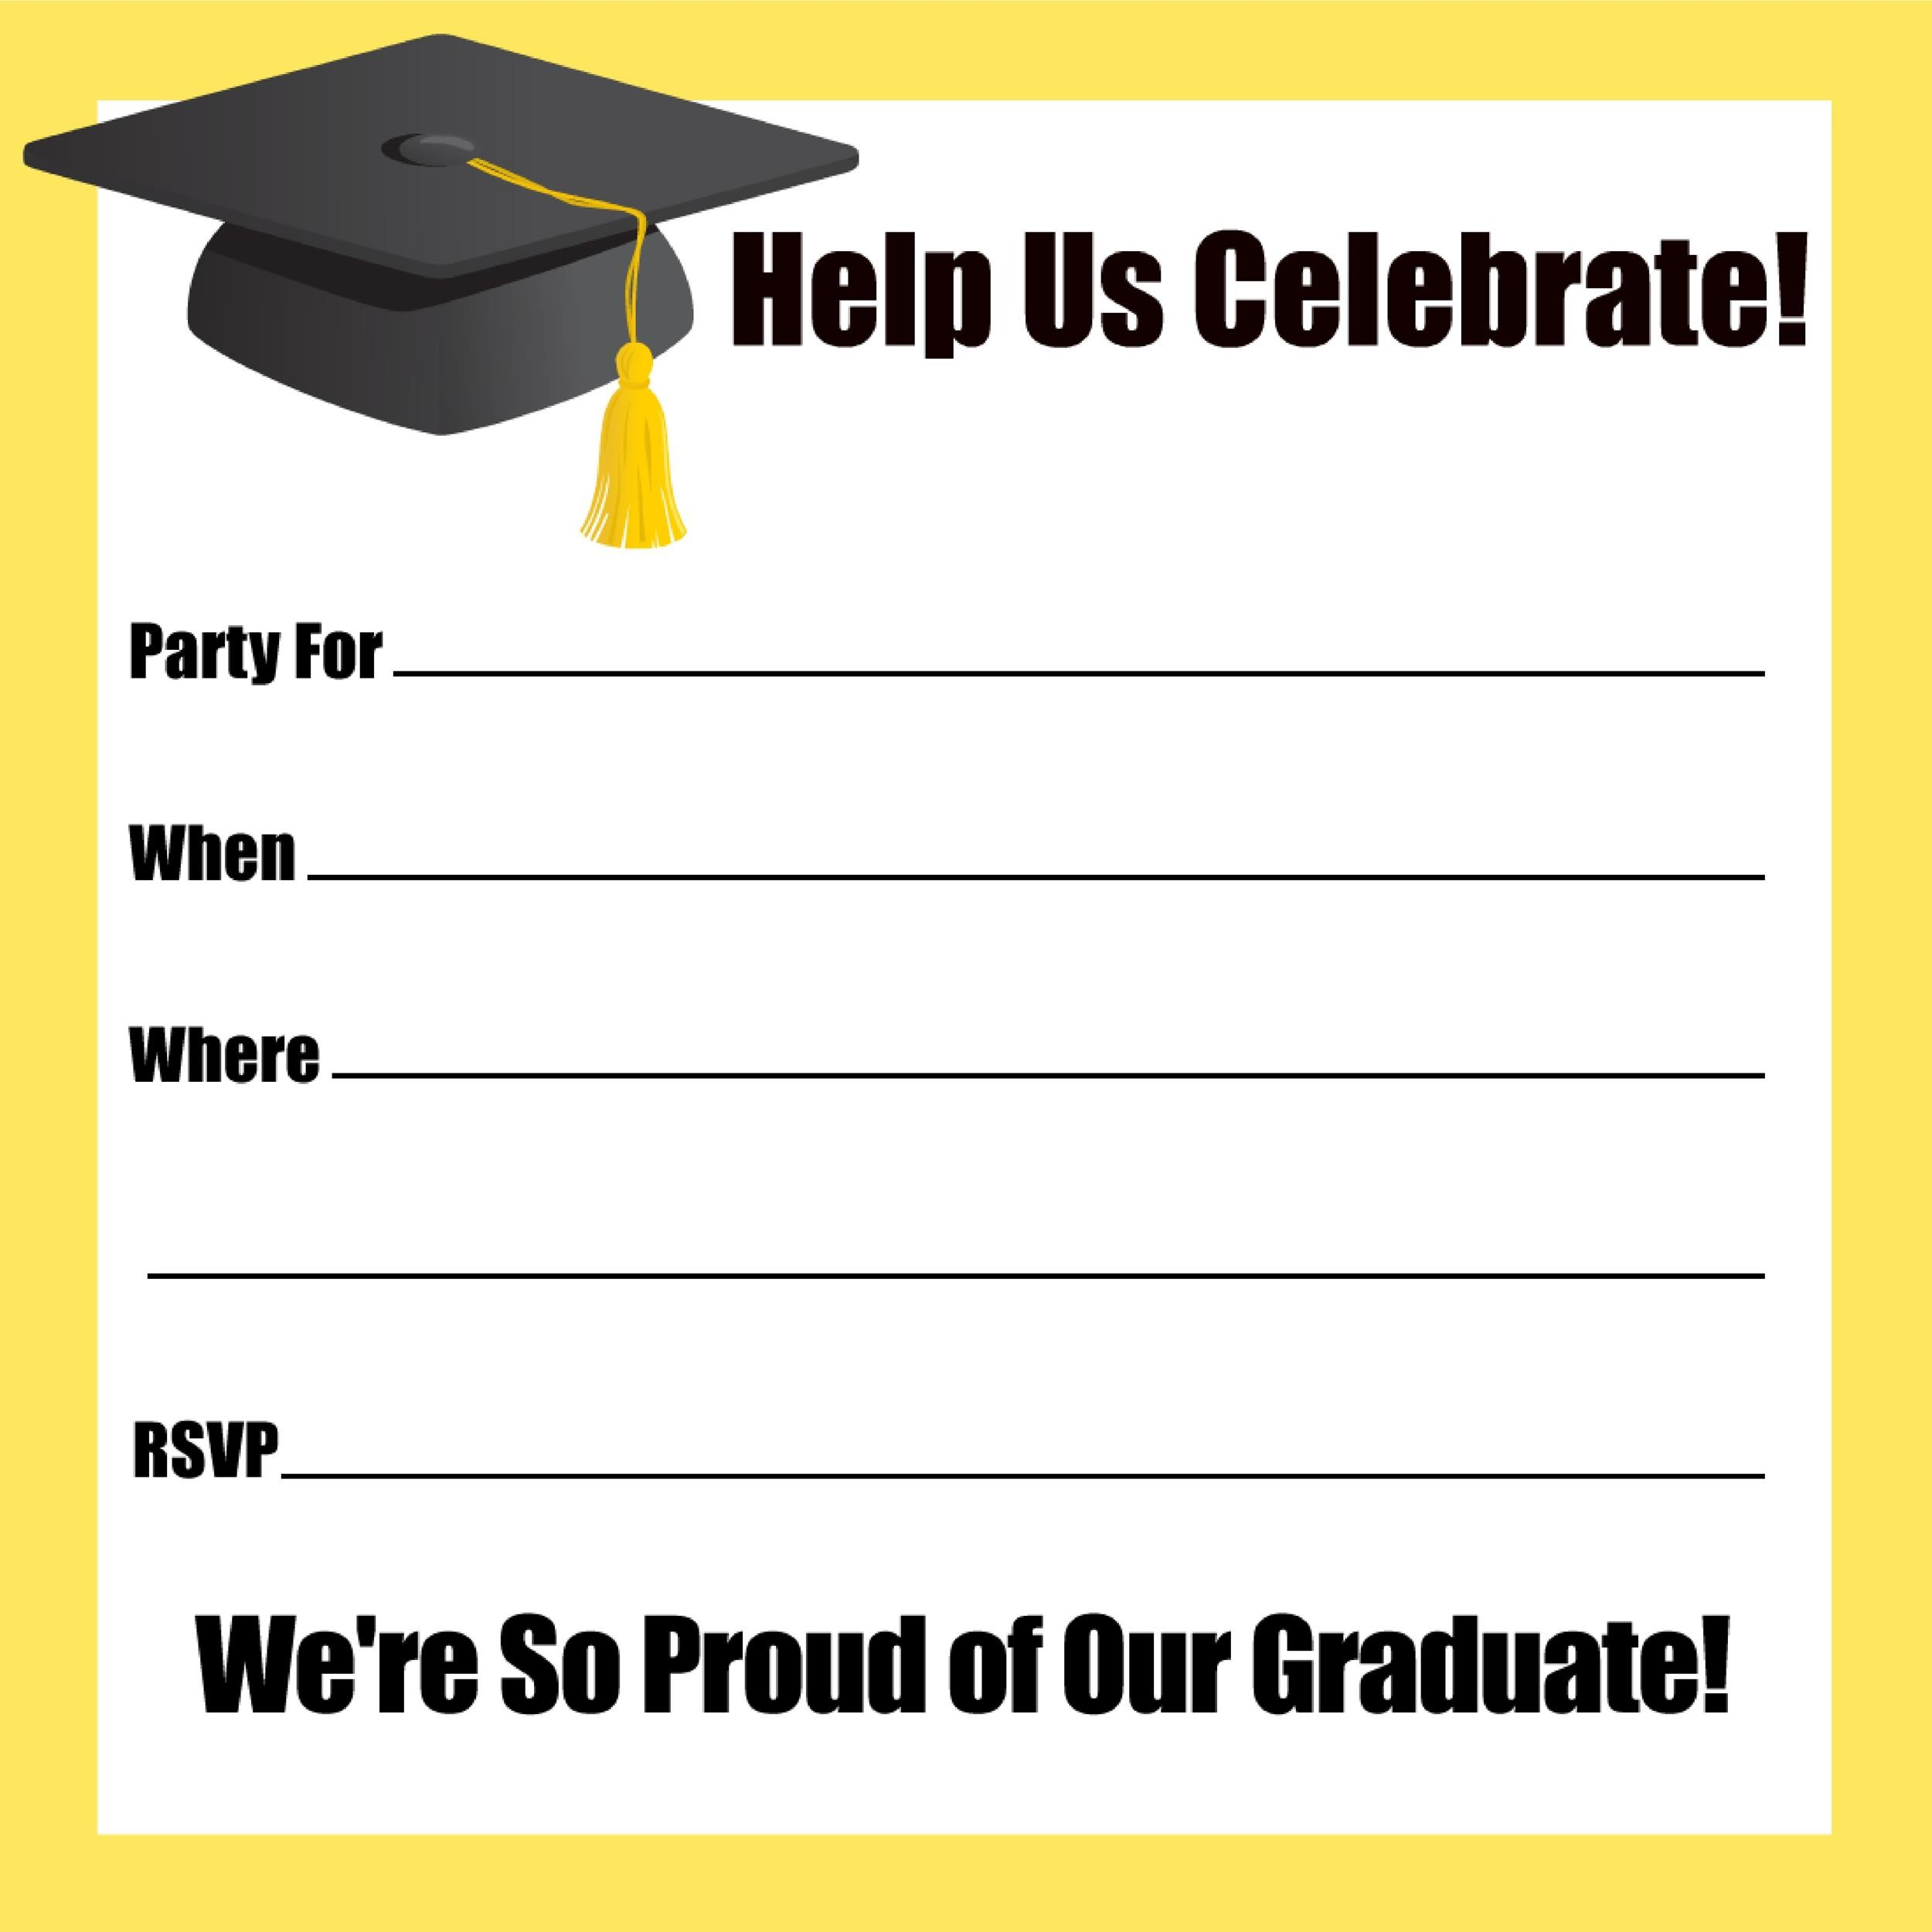 picture about Free Printable Graduation Party Games identify 40+ Free of charge Commencement Invitation Templates ᐅ Template Lab